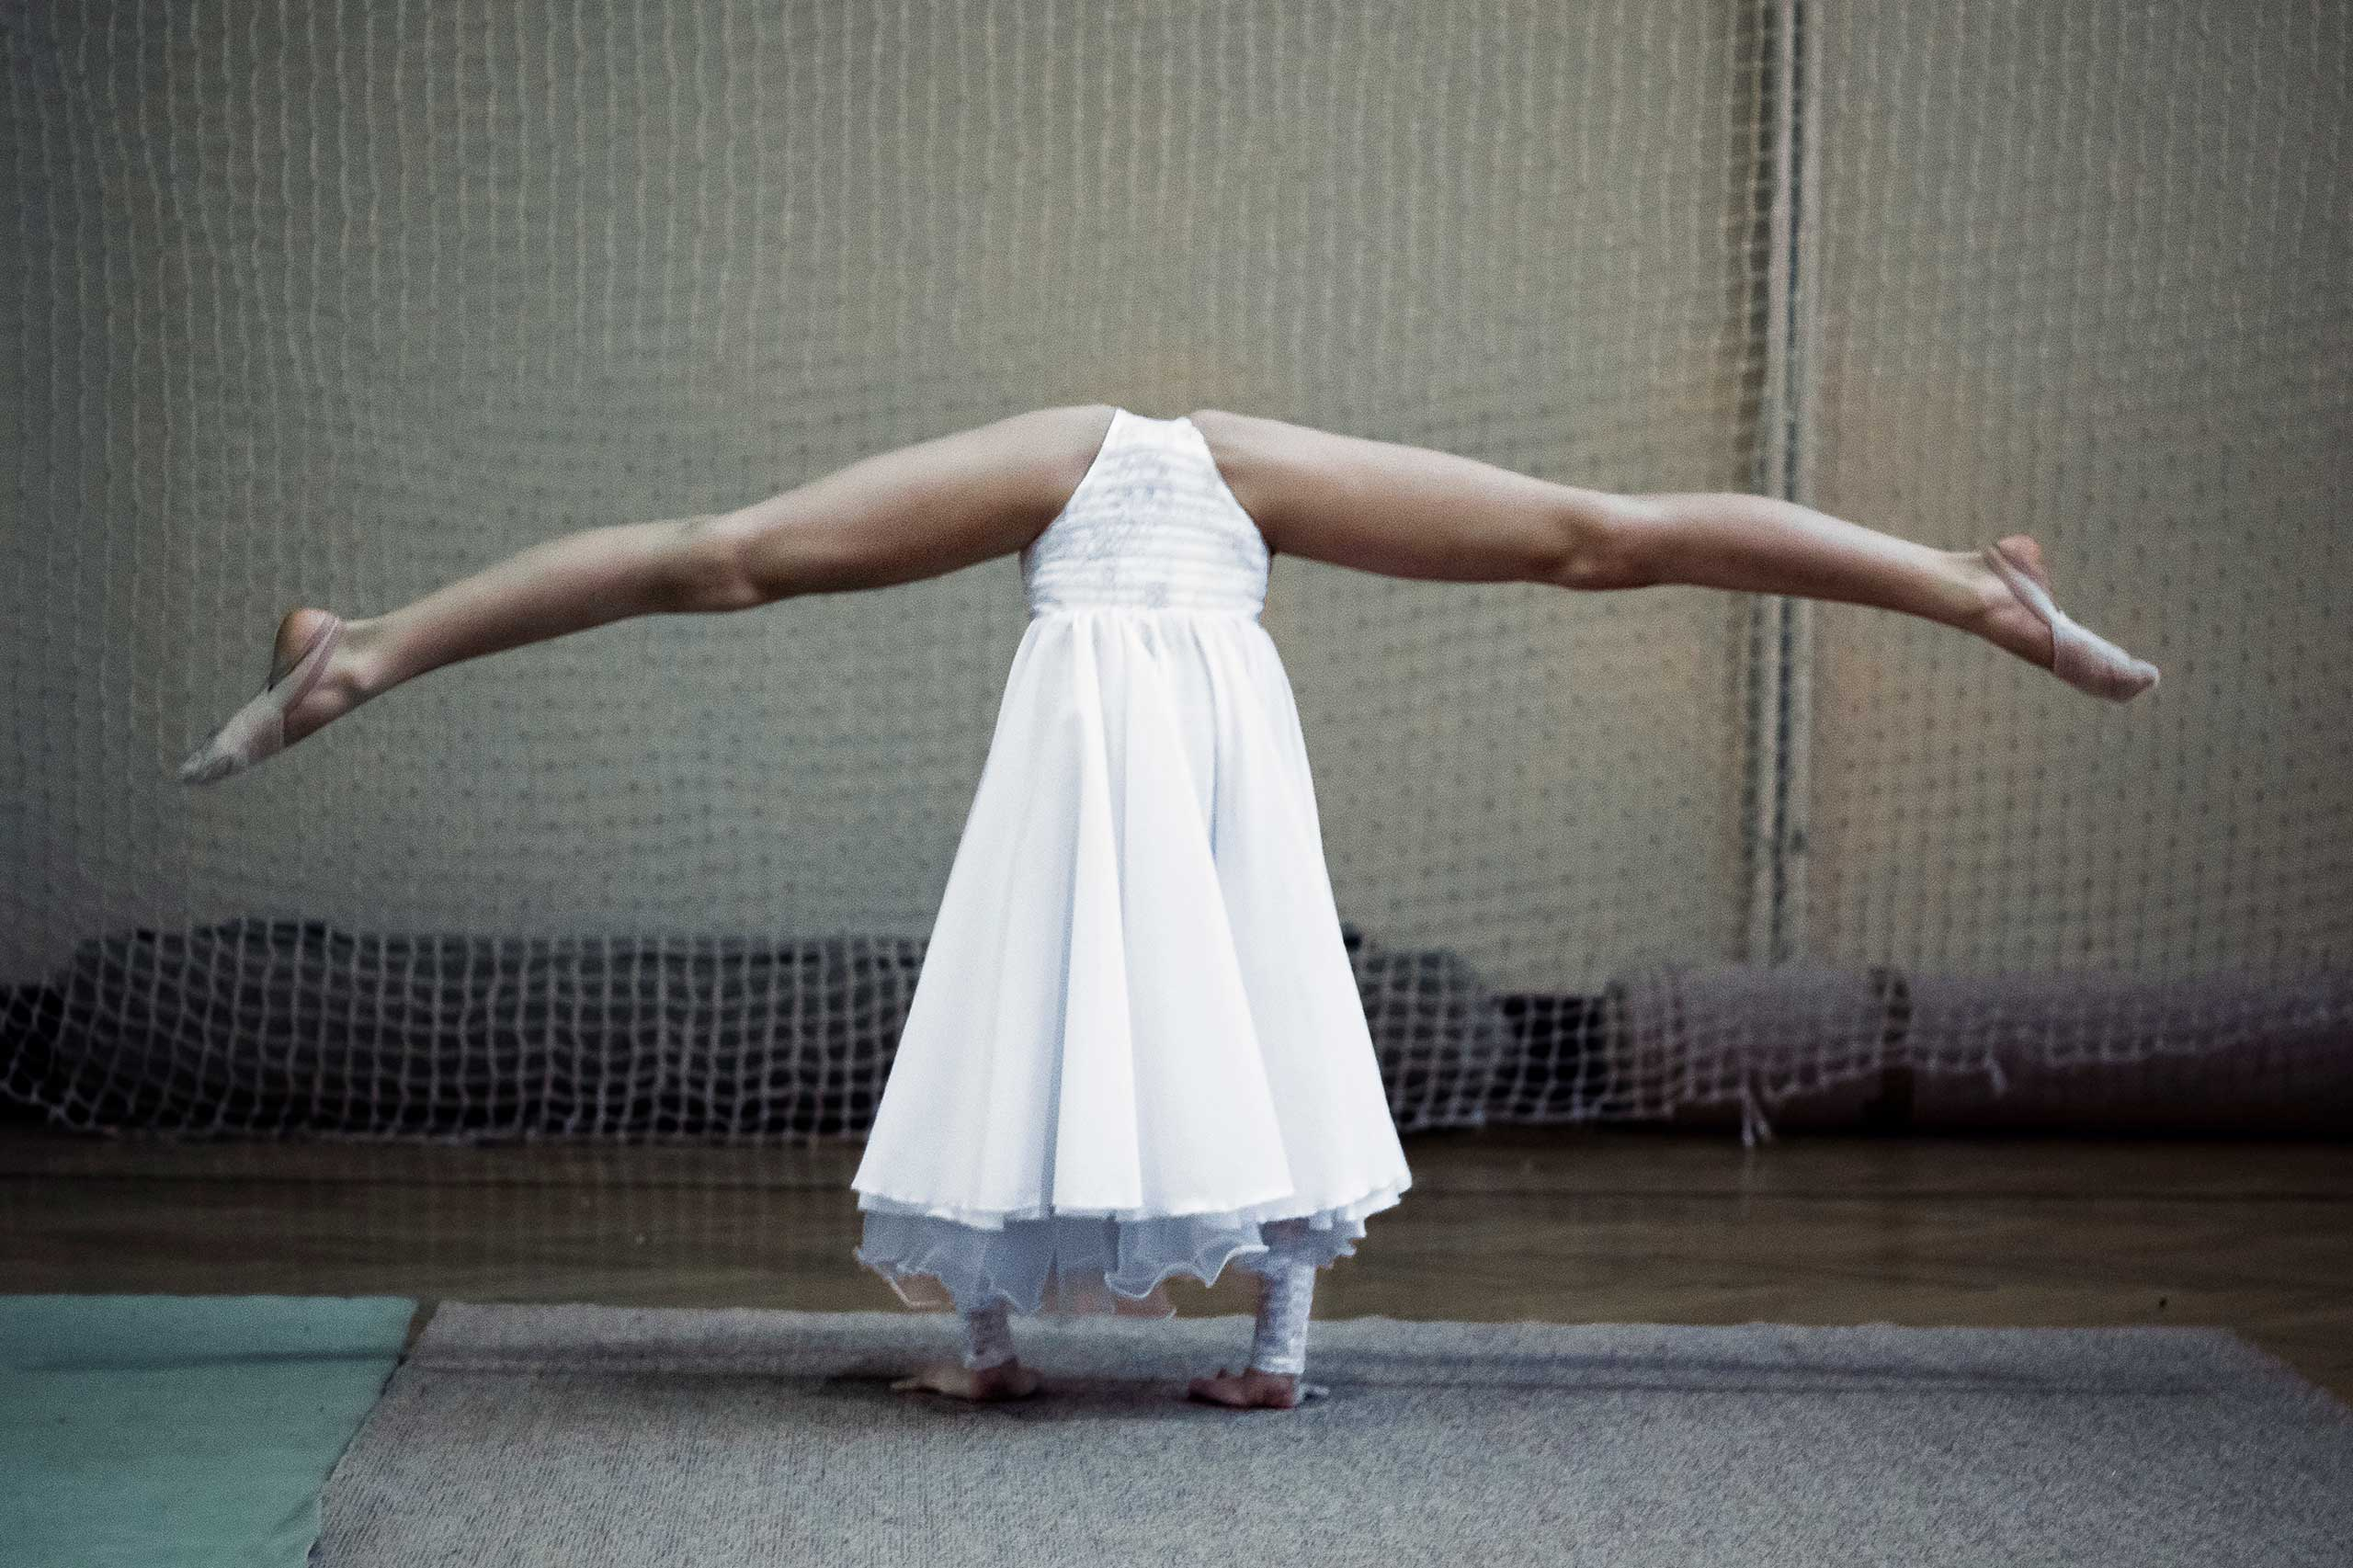 Nominated in the Arts and Culture category. Adrian Jaszczak's work on an artistic gymnastics tournament in Poland.